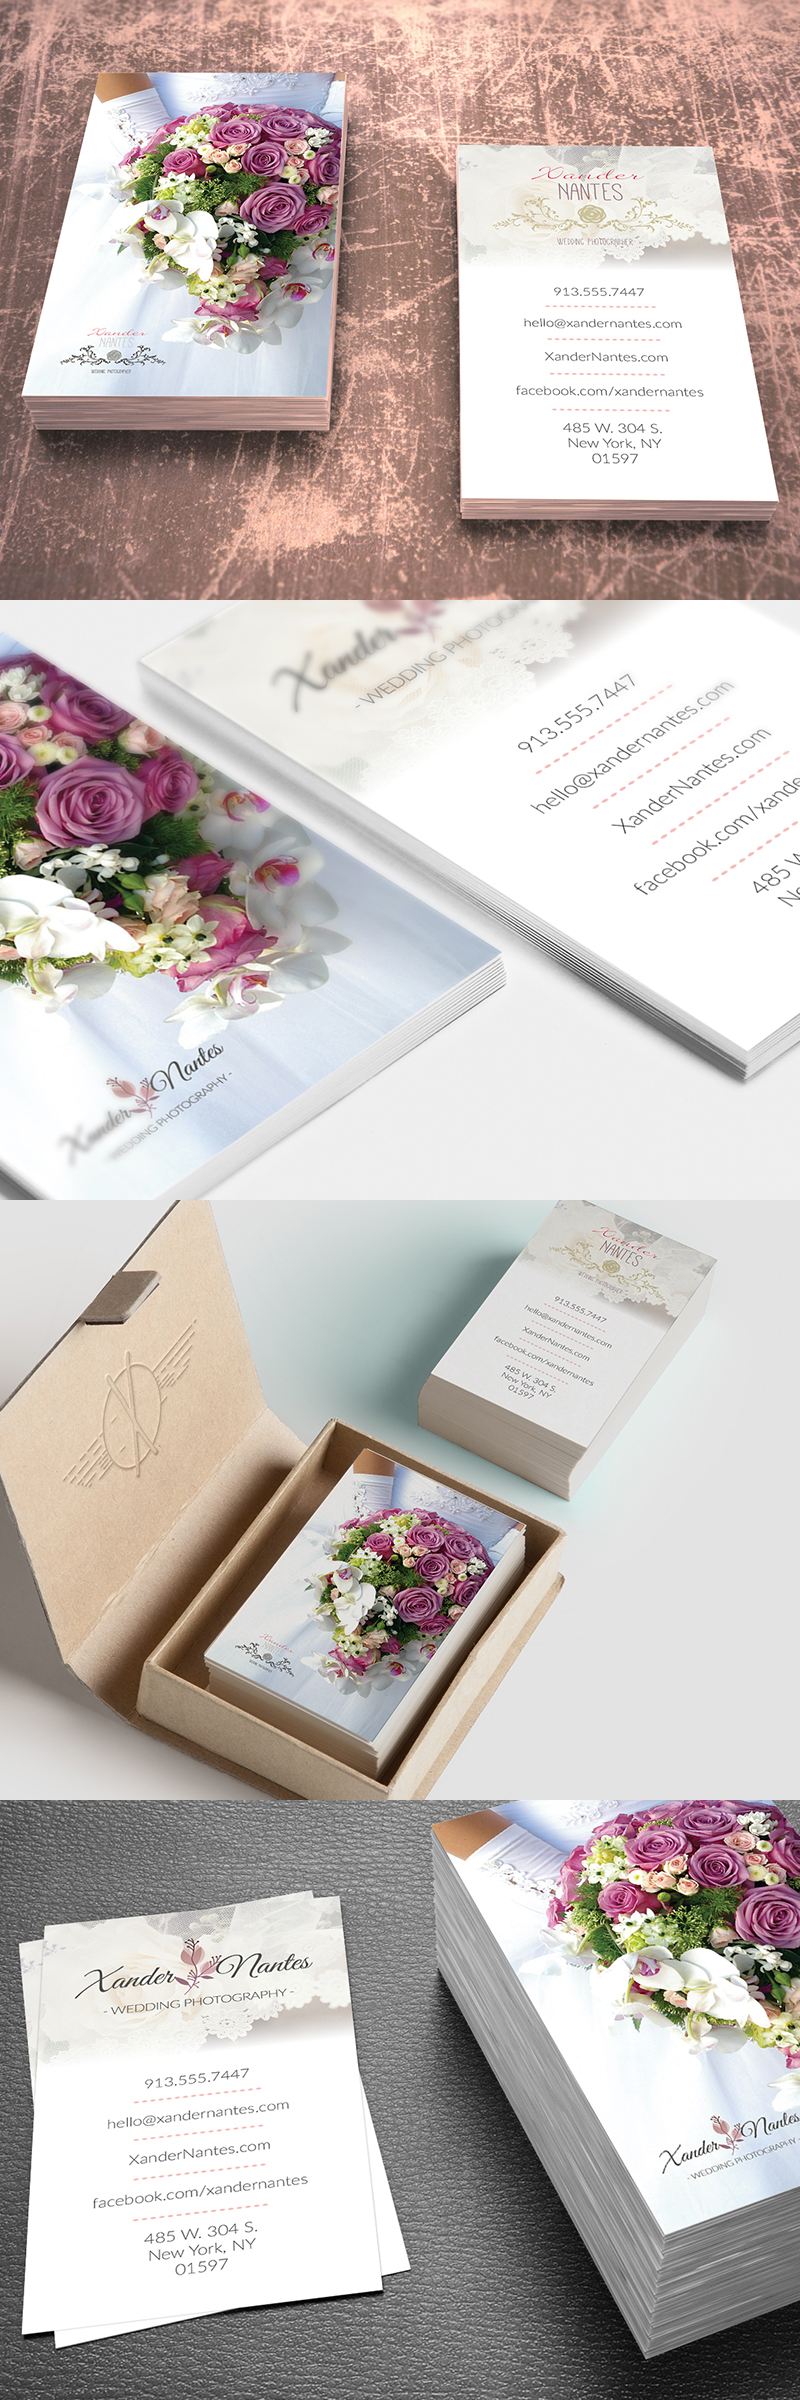 WeddingPhotographer_BusinessCard_preview_long